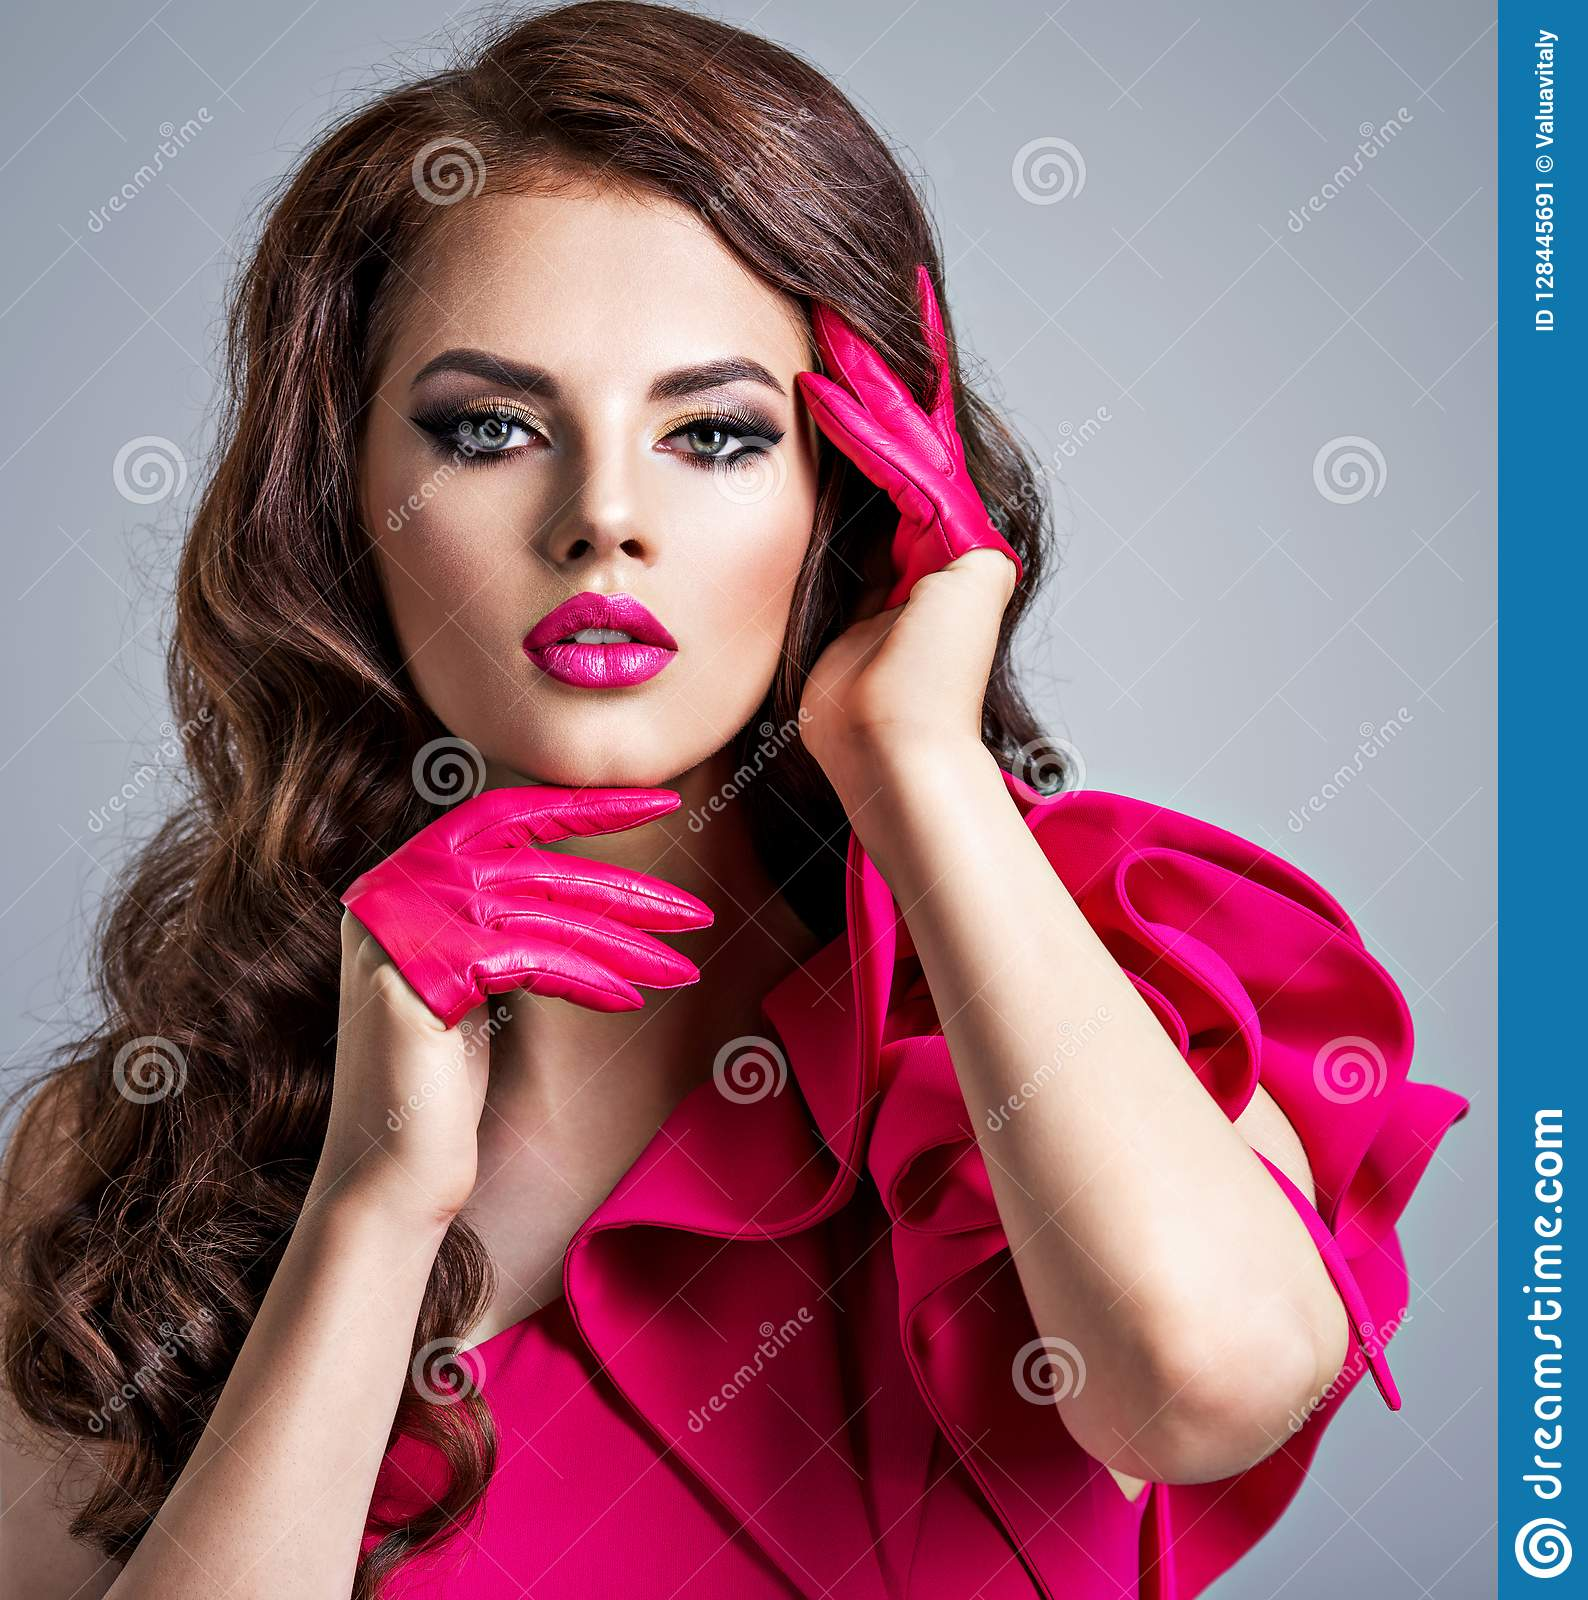 Fashionable Woman In A Red Dress With A Creative Eye Makeup Stock